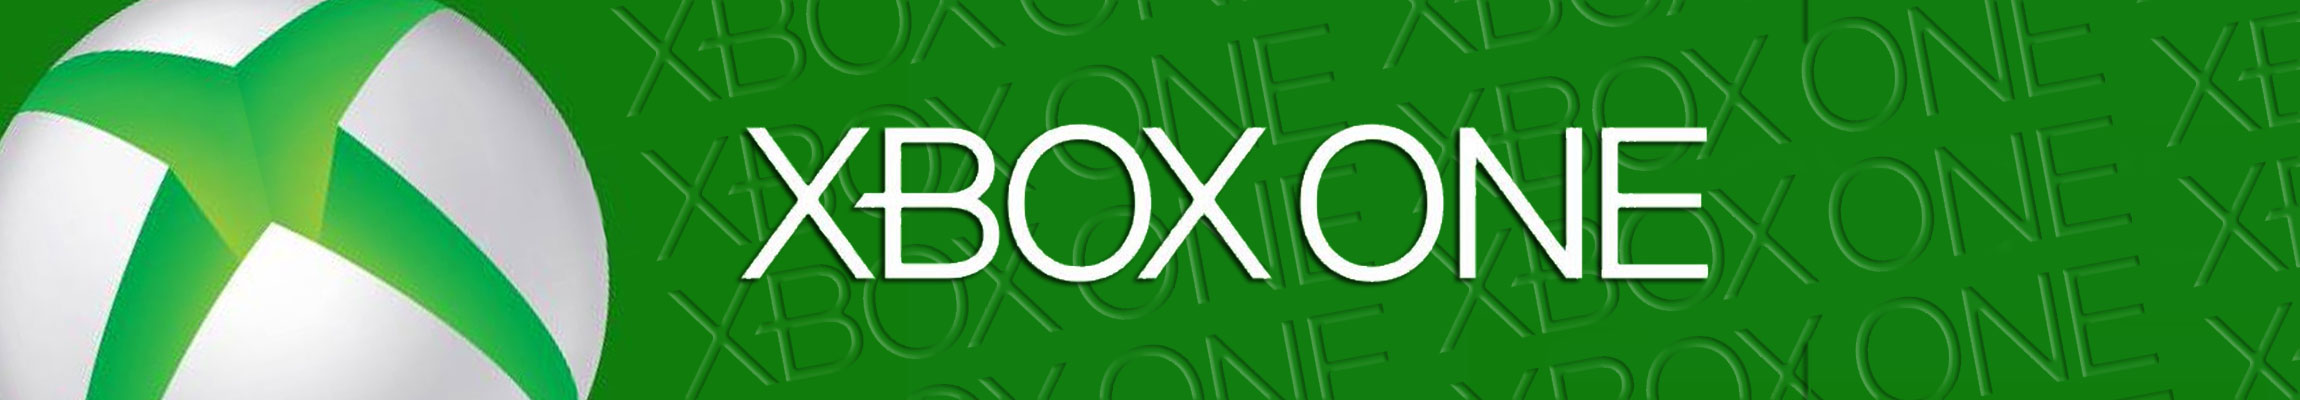 http://lastminutecontinue.com/wp-content/uploads/header_xboxone.jpg